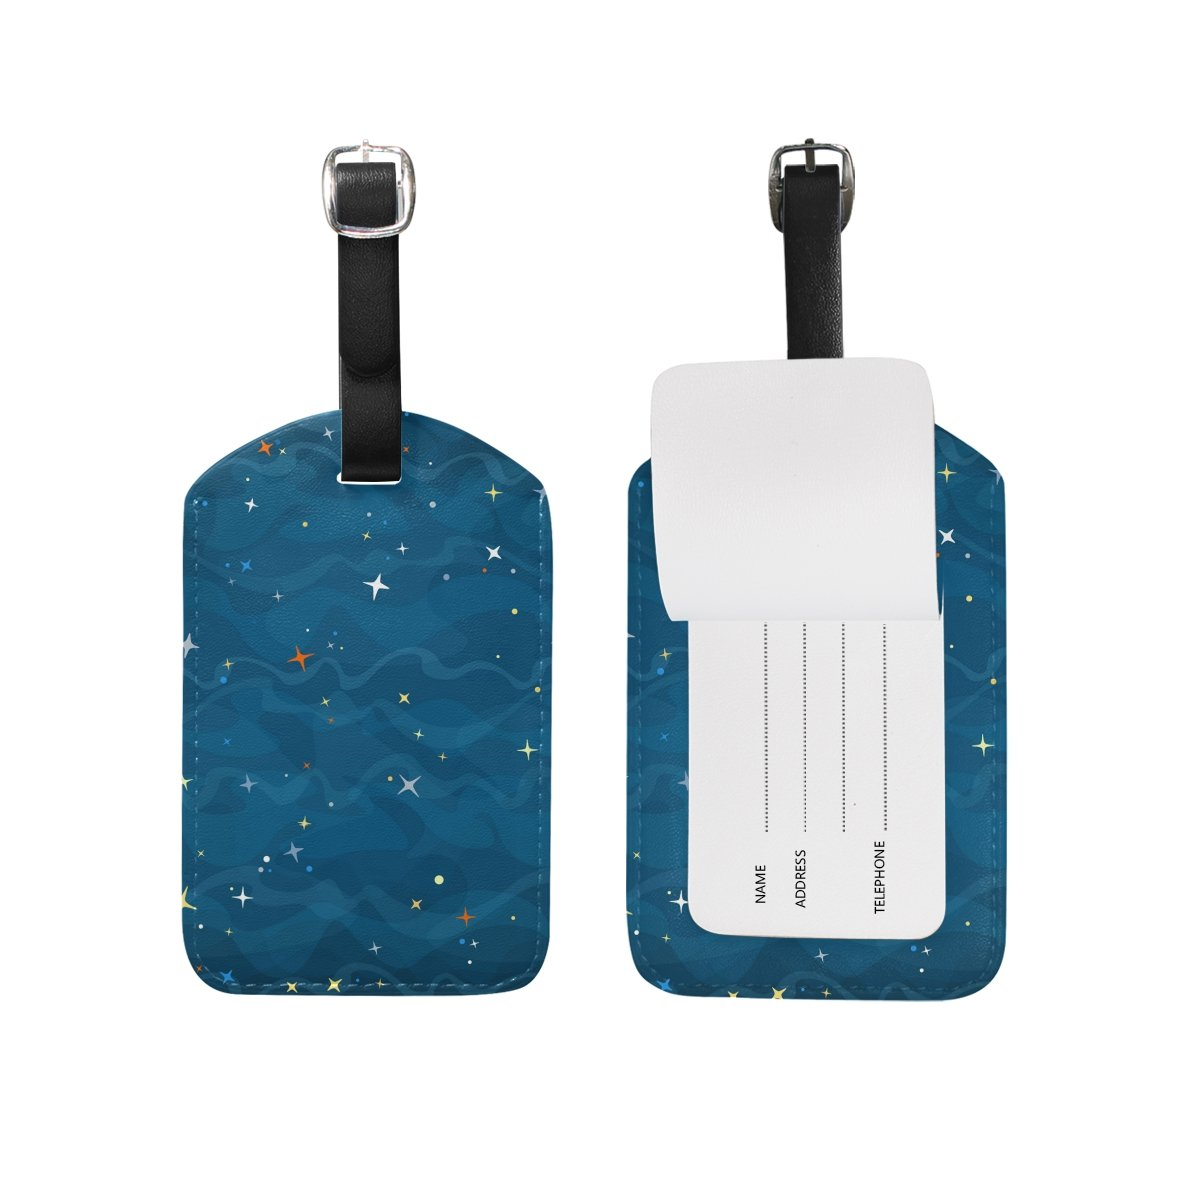 Saobao Travel Luggage Tag Background With Stars PU Leather Baggage Travel ID